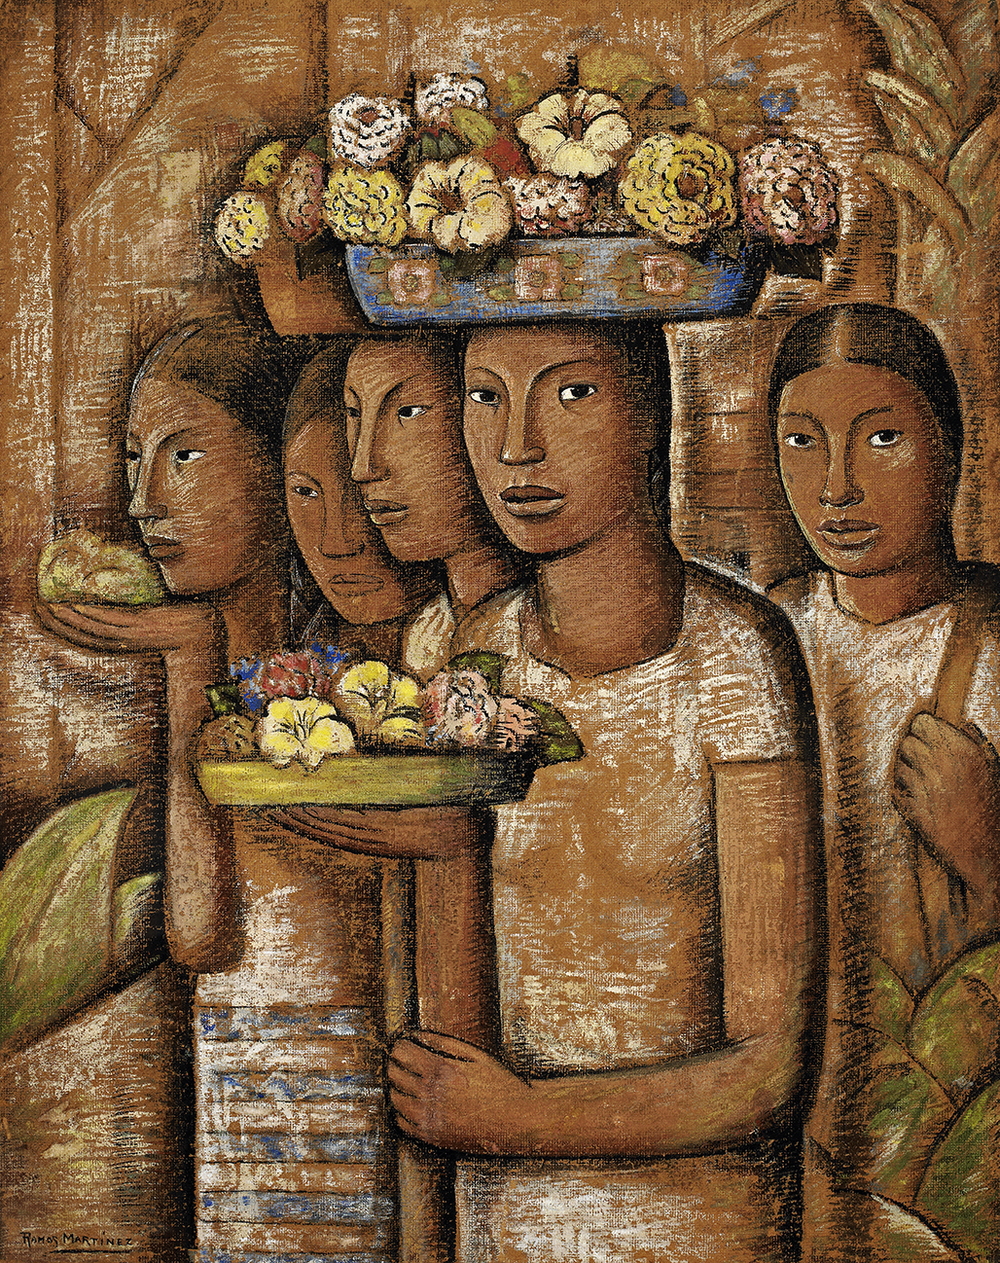 Alfredo Ramos Martinez, Mujeres Indigenas de Oaxaca, 1944, oil on board, 44.8 x 35.5 inches;  113.8 x 90.2 centimeters